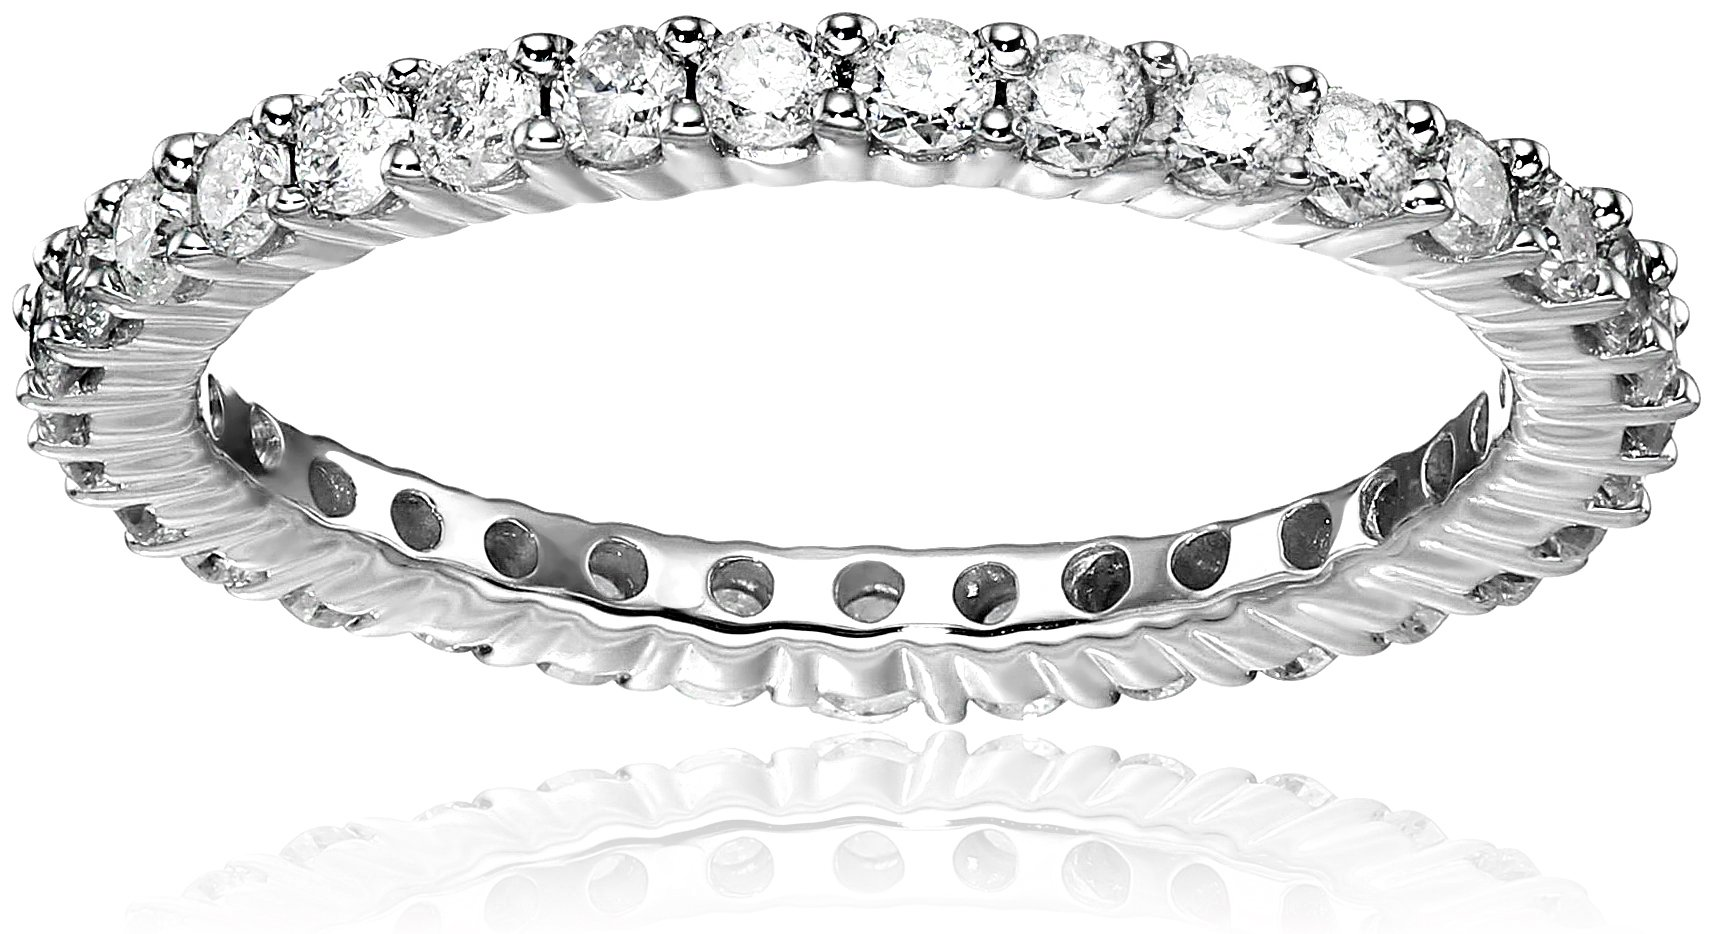 14k White Gold Eternity Ring (1cttw, H-I Color, I2-I3 Clarity), Size 7